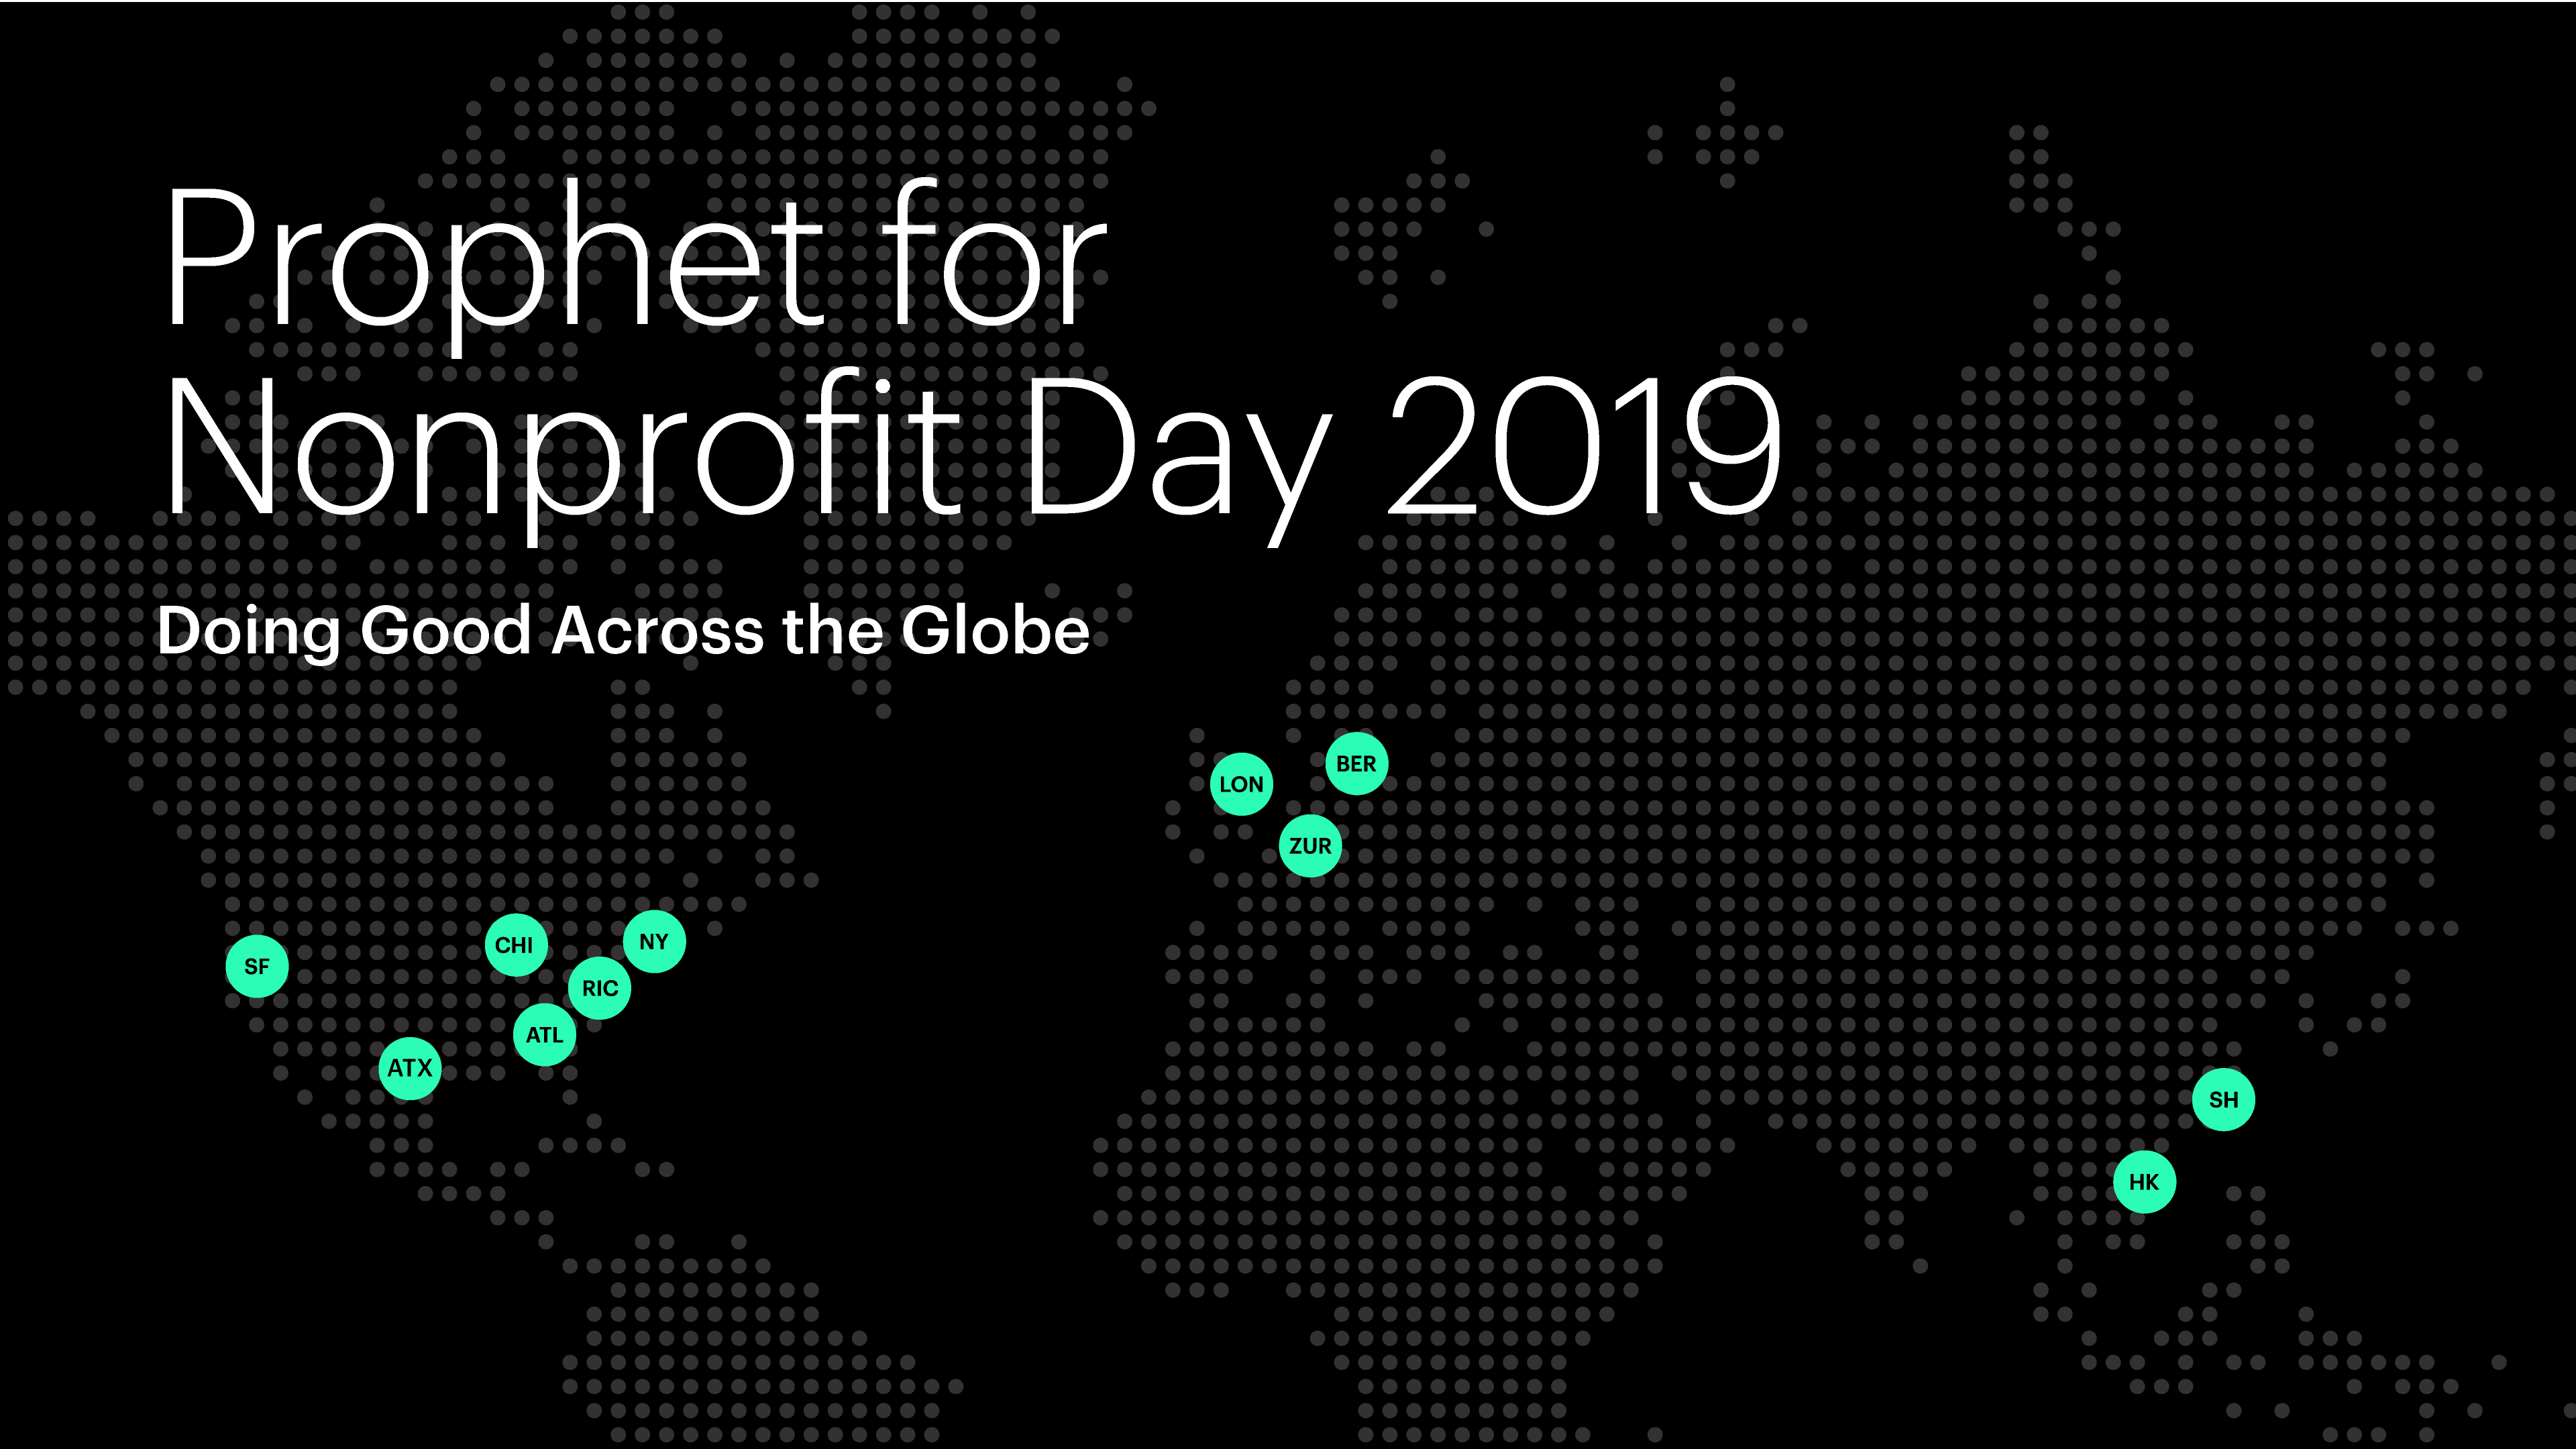 Prophet for Nonprofit Day 2019